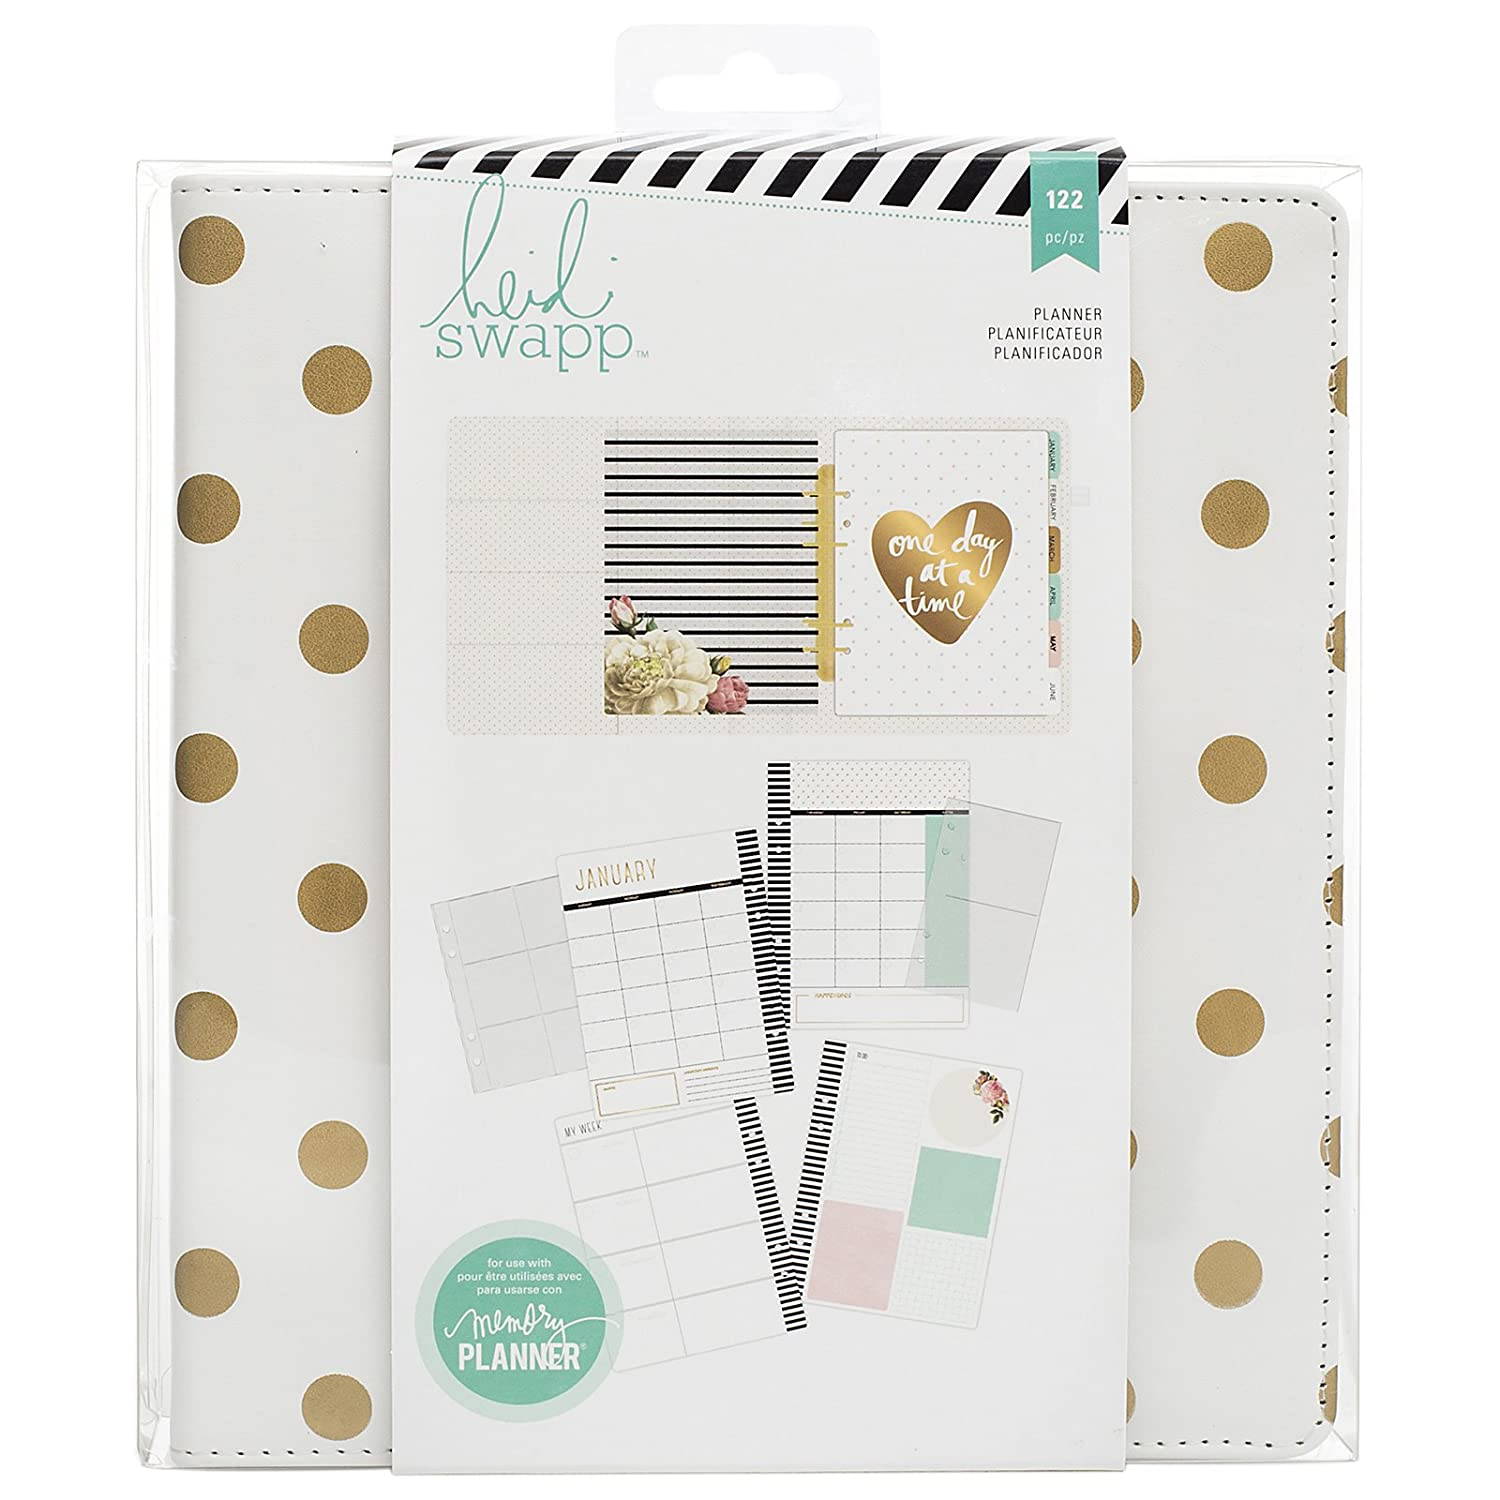 American Crafts Heidi Swapp Large Memory Planner Gold Foil Dots, Acrylic, Multicolour 312597